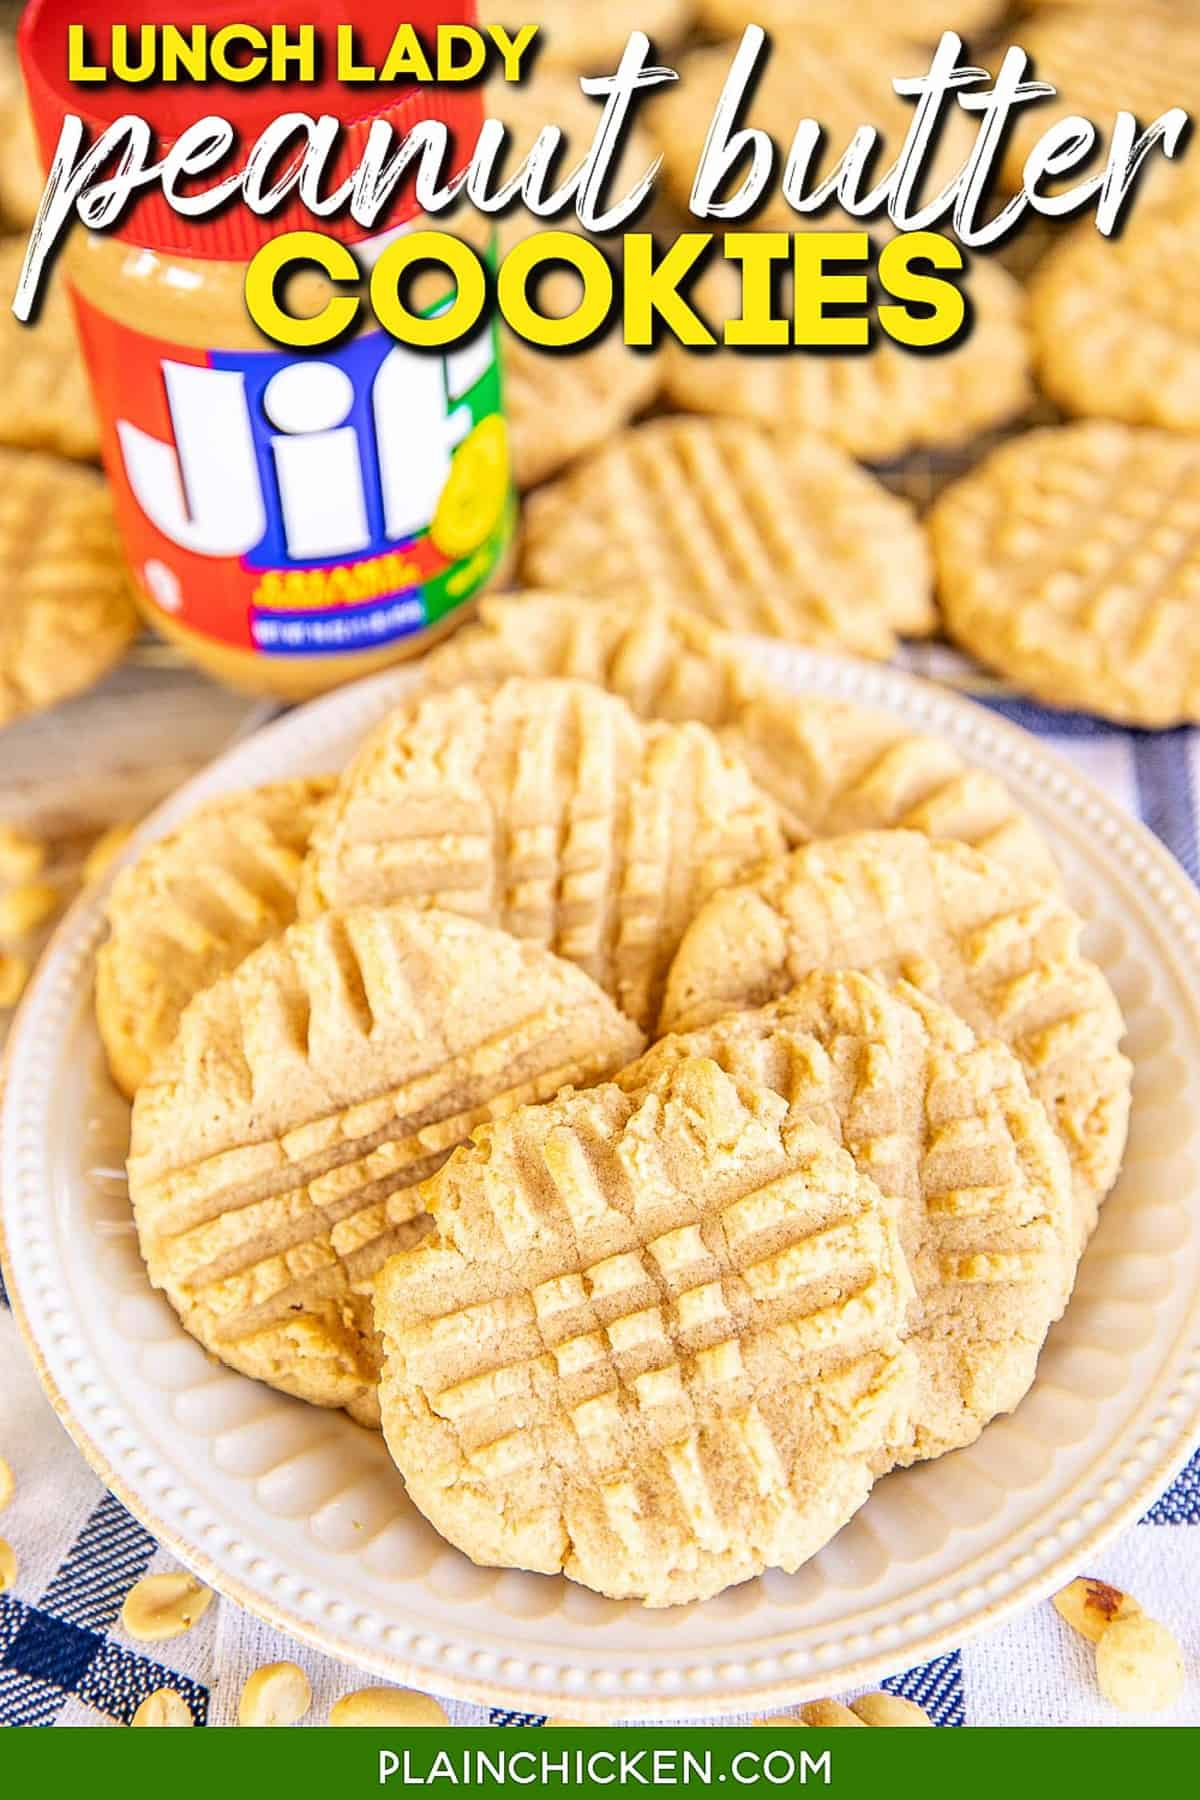 Lunch Lady Peanut Butter Cookies